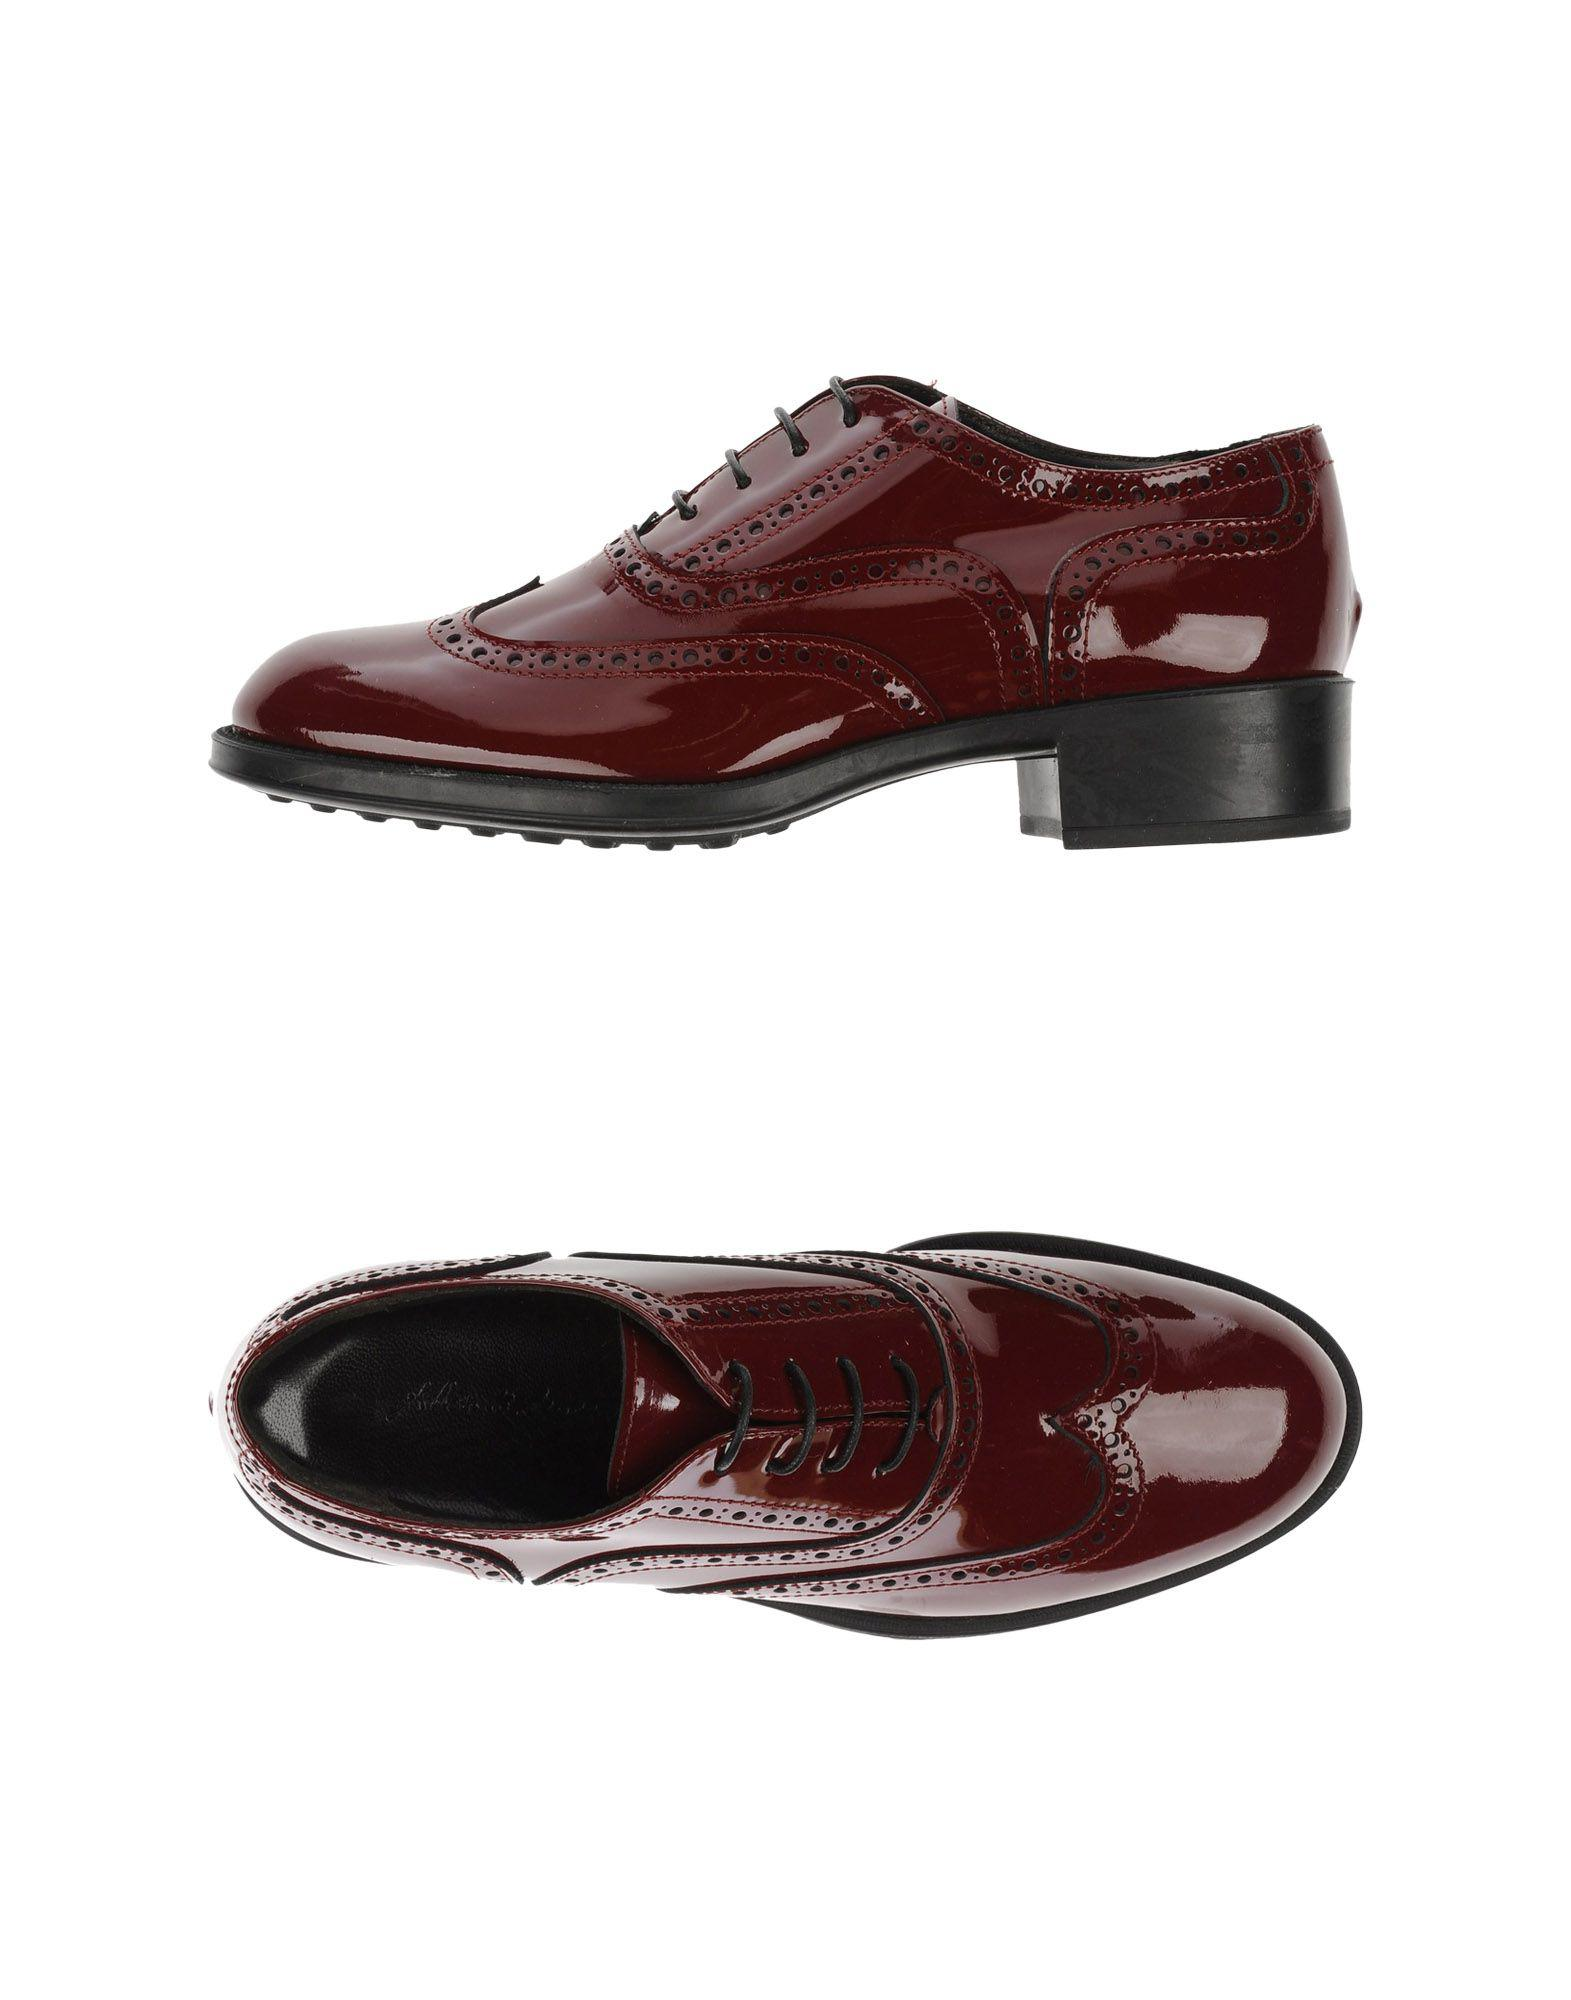 FOOTWEAR - Lace-up shoes Alberto Moretti Buy Cheap Limited Edition Cheap Original Buy Online Outlet Clearance 100% Original Buy Cheap 2018 rJ40p